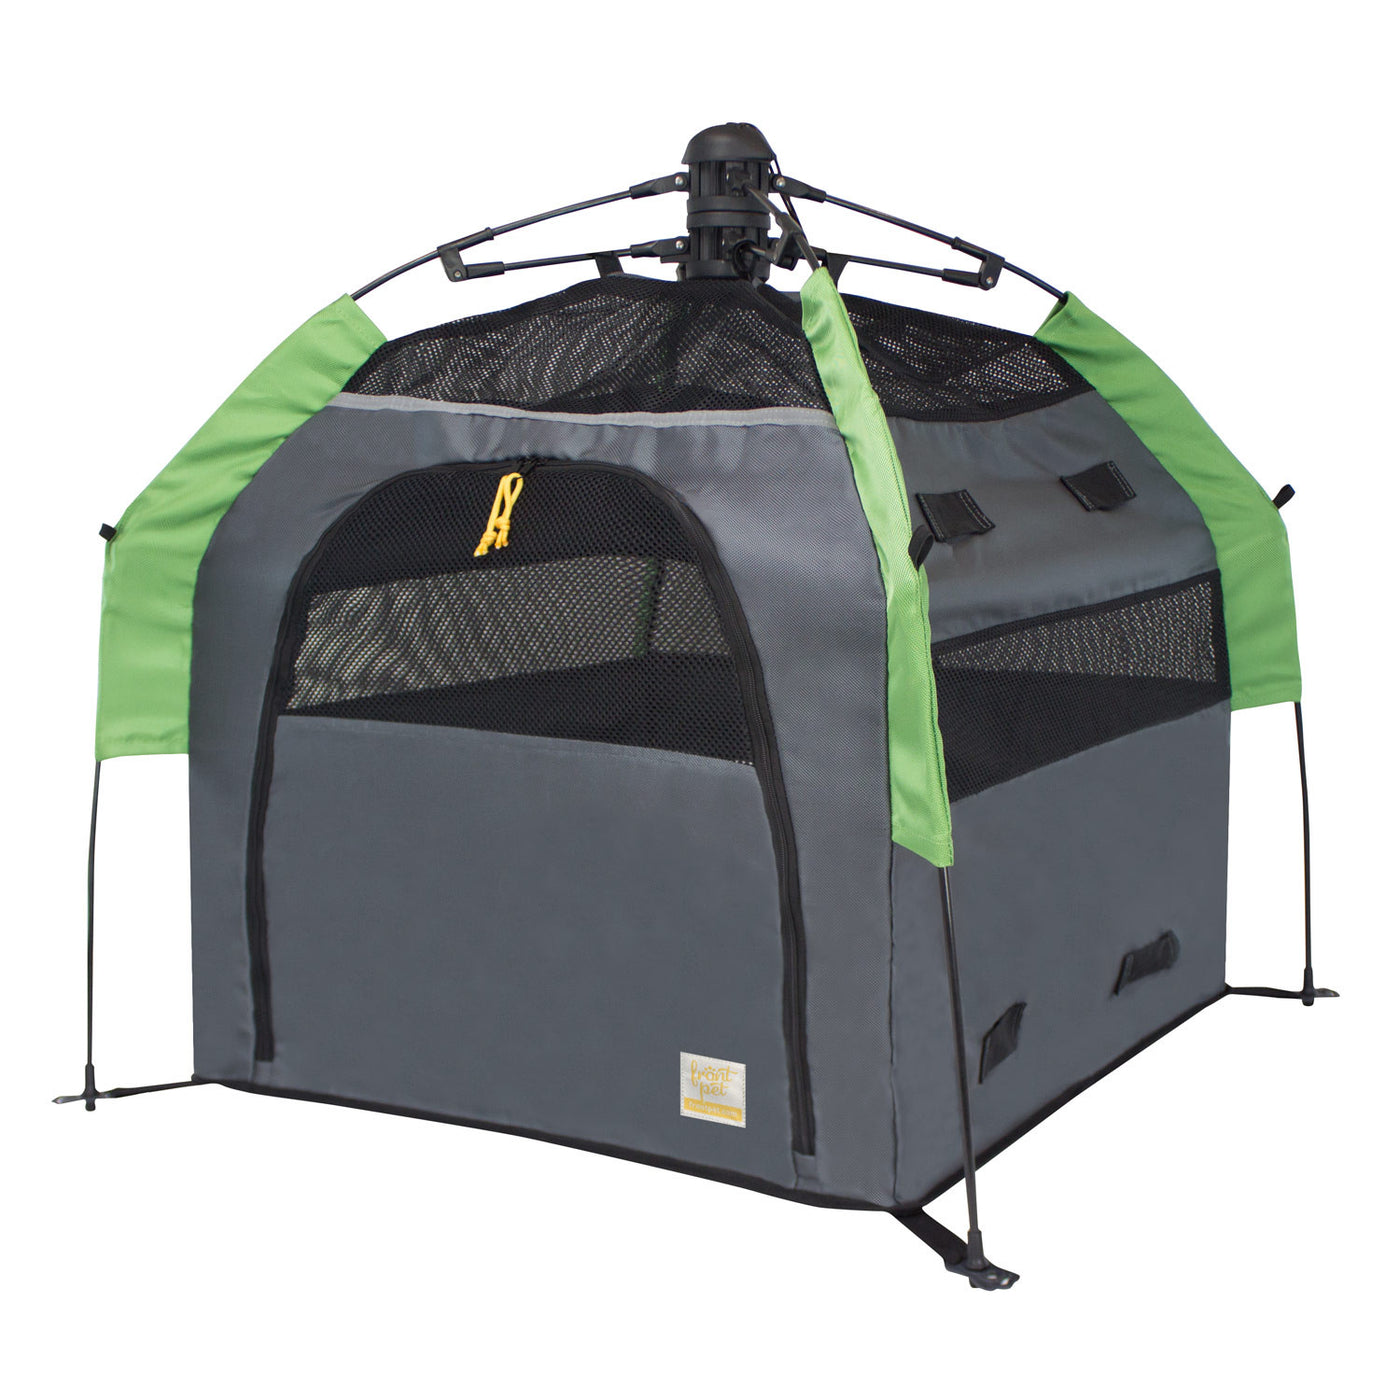 Angled view of dog tent without rainfly (large) ...  sc 1 st  Frontpet.com & Dog Tent | Pop Up Dog Tent For Outdoors and Travel u2013 Frontpet.com